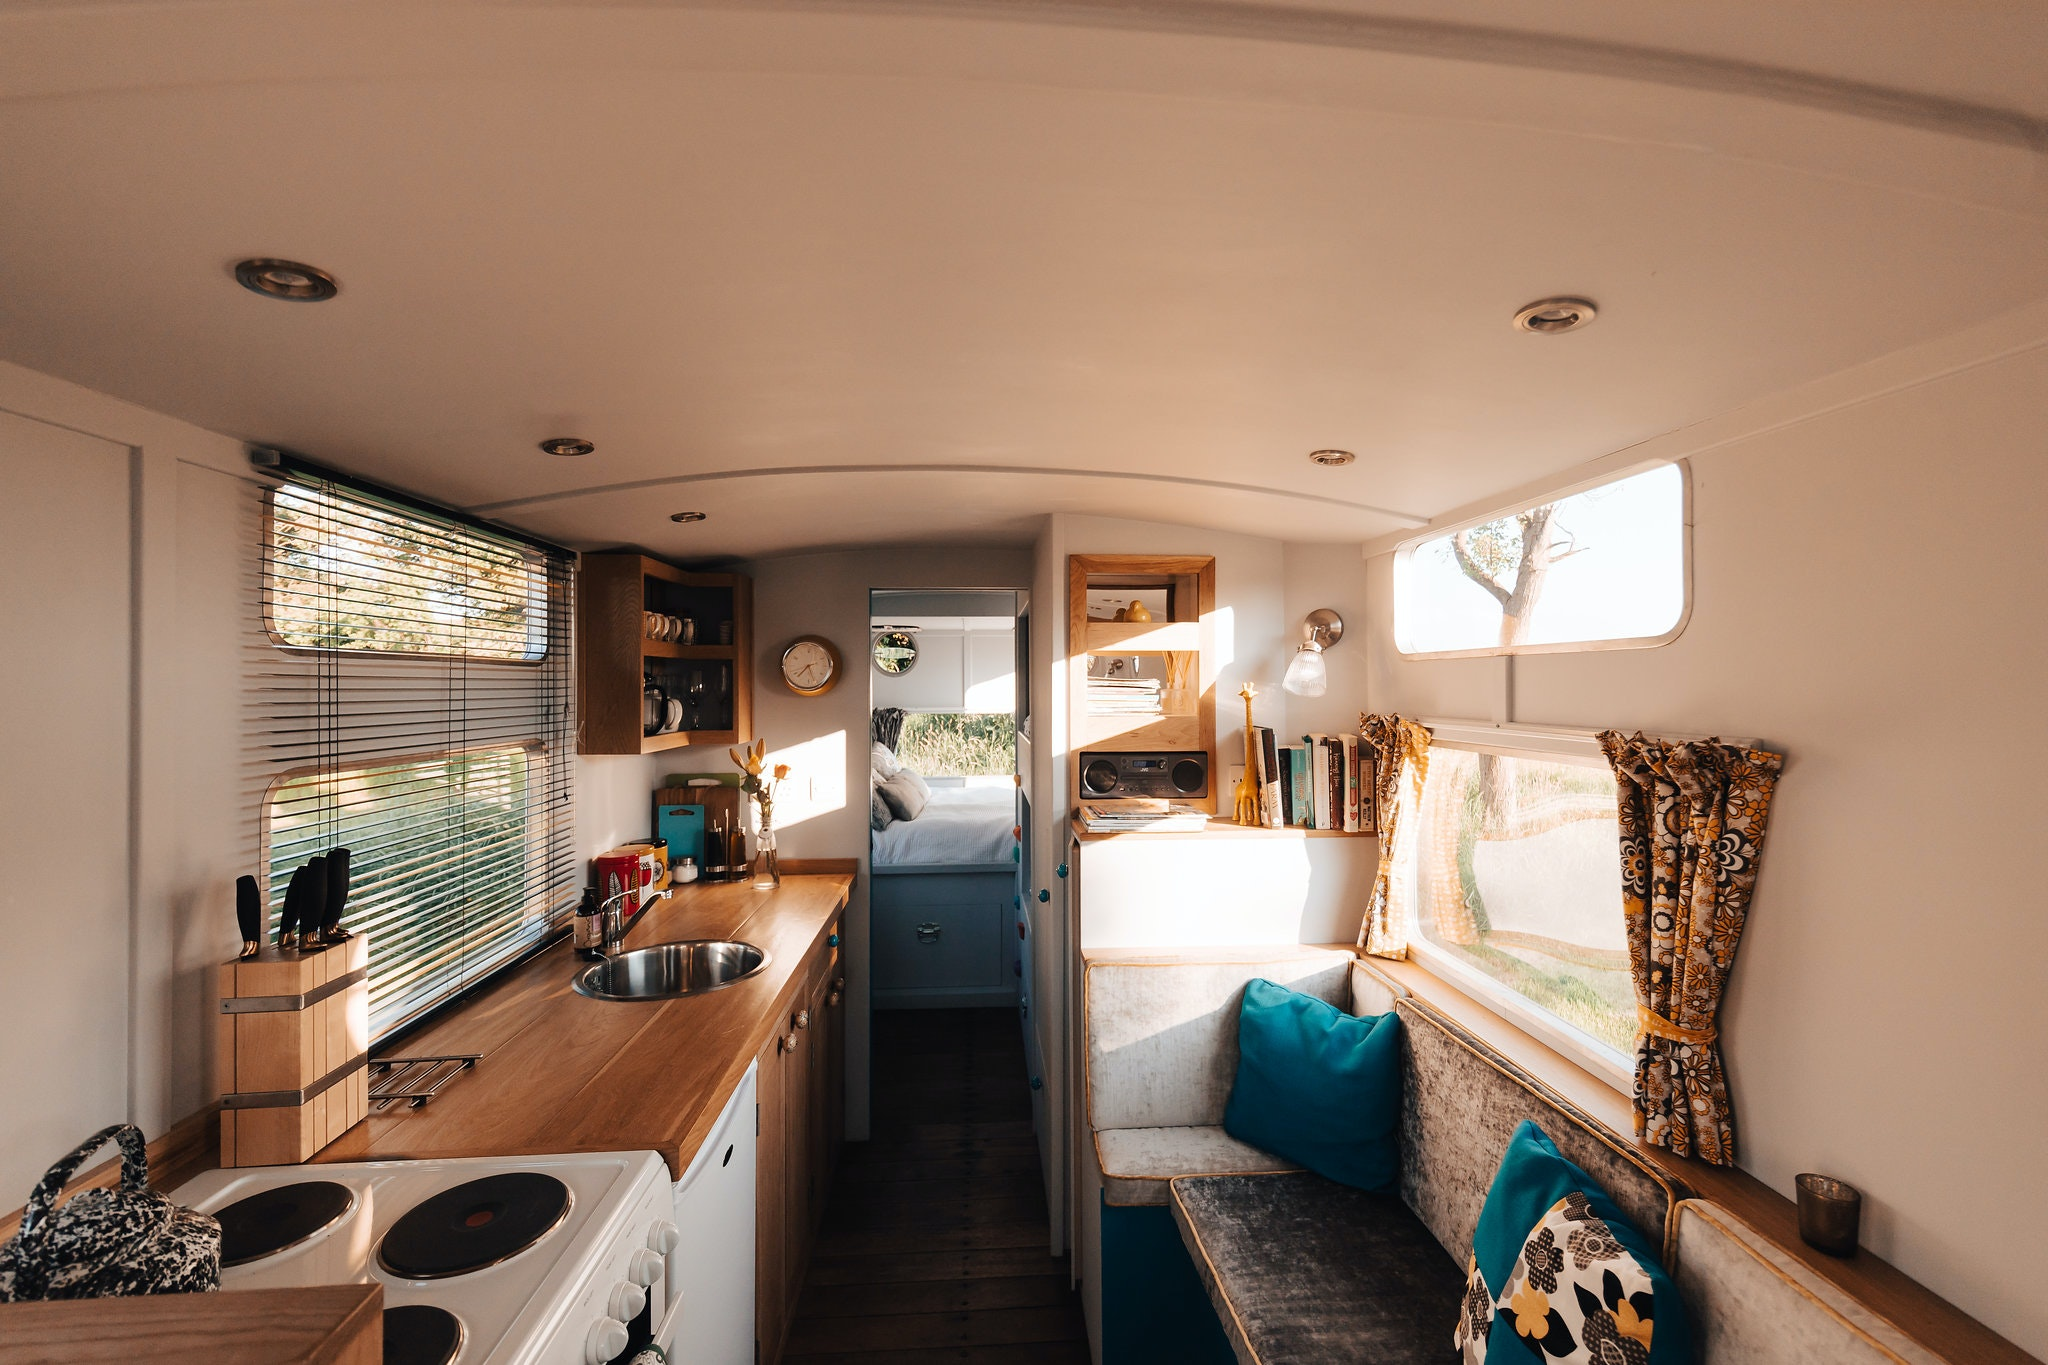 Creative This Is An Absolute Delight Believe You Me, I Am No Camper, But I Loved Our Time In The Warwick Knight The Fit Out Of This Old Aluminium Caravan Is Superb The Owner Is A True Craftsman The Attention To Detail Along With The Very Clever Use